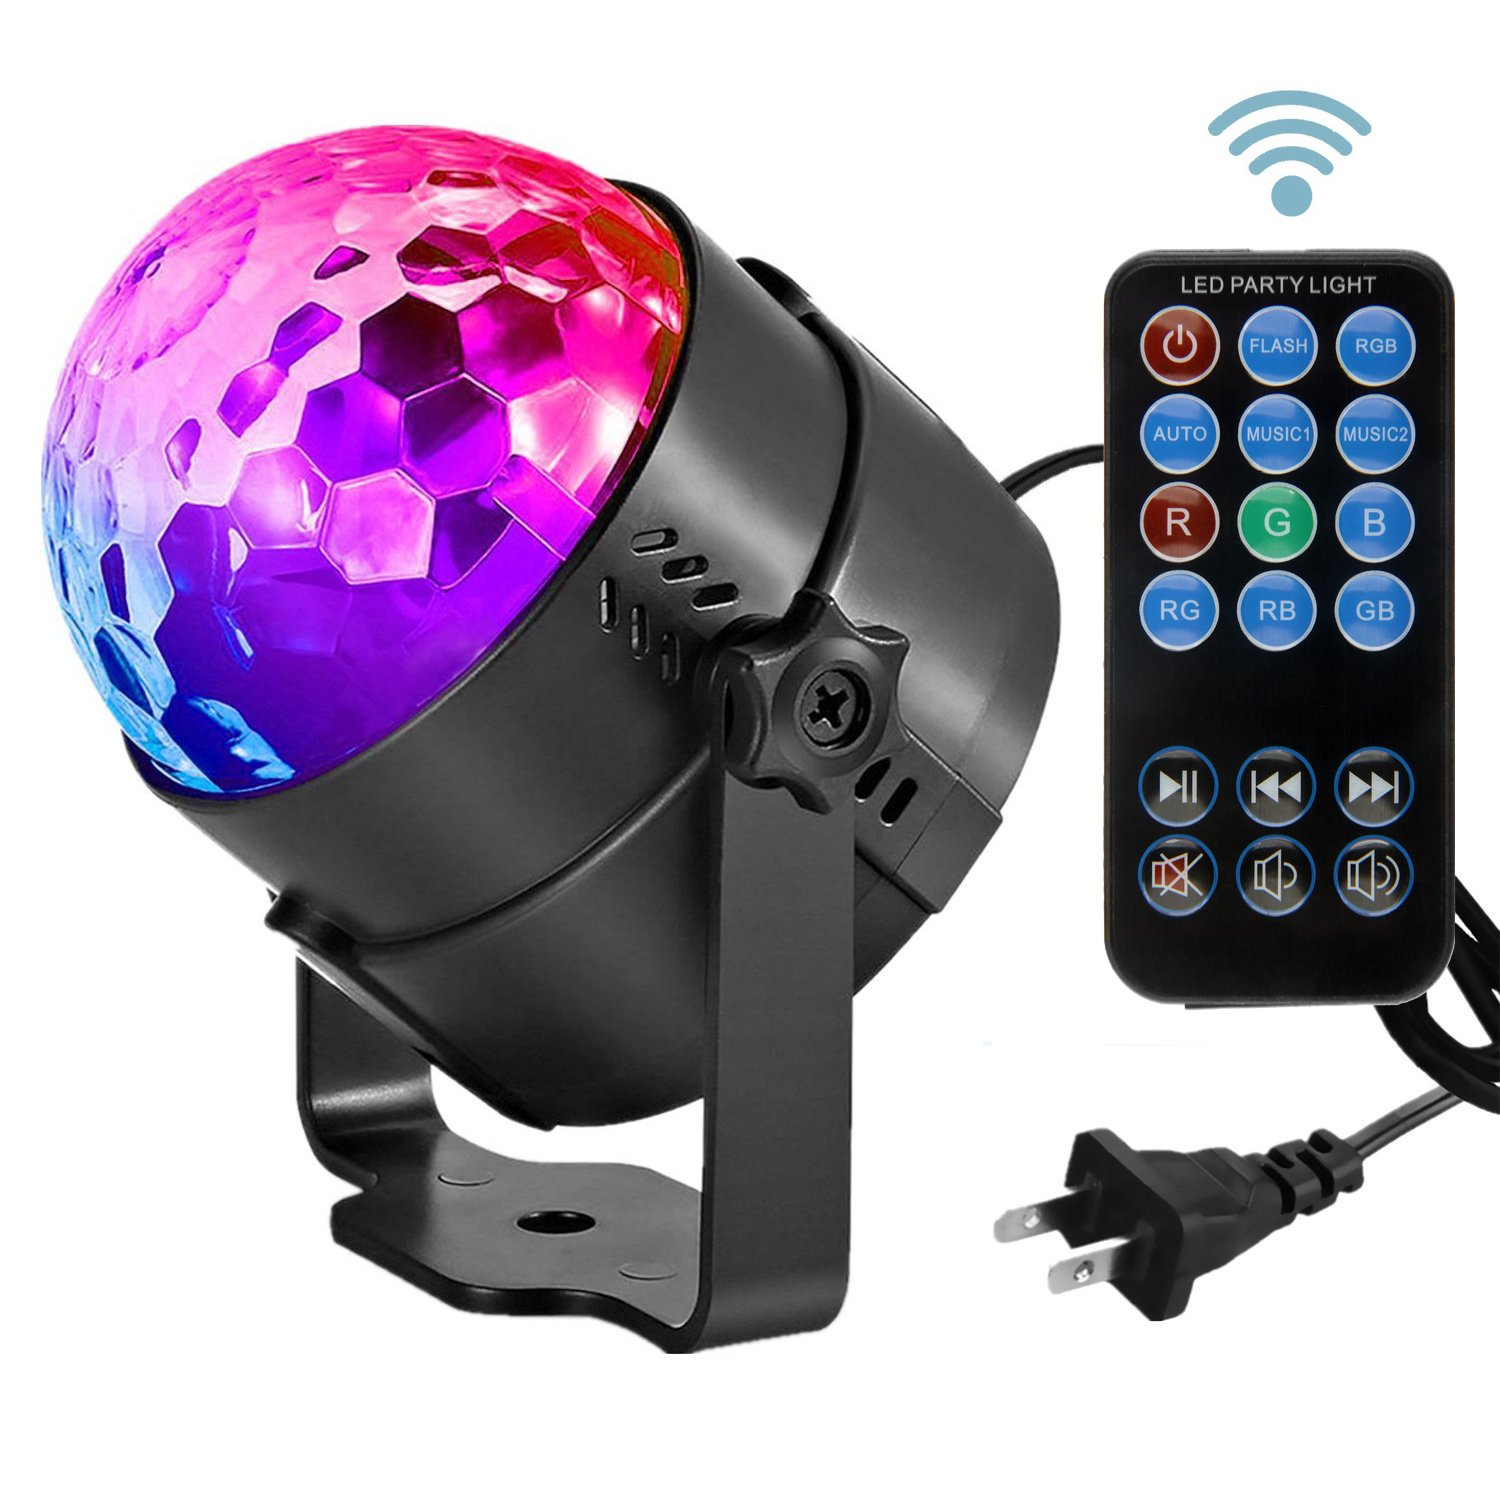 A picture of a disco ball with a remote control.